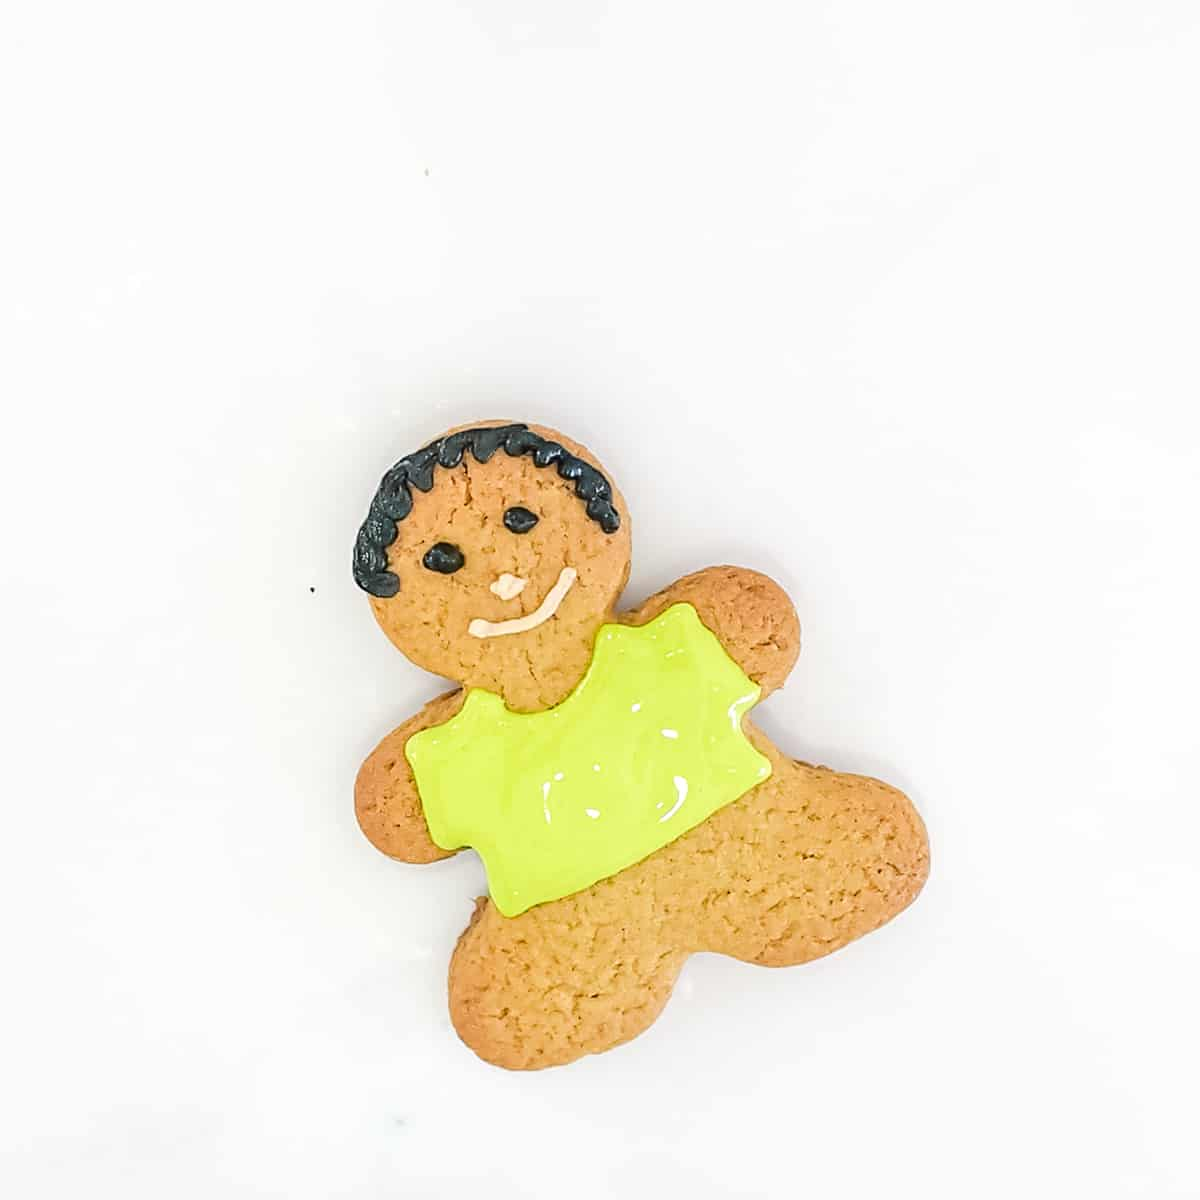 A gingerbread cookies decorated as a boy with green shirt.